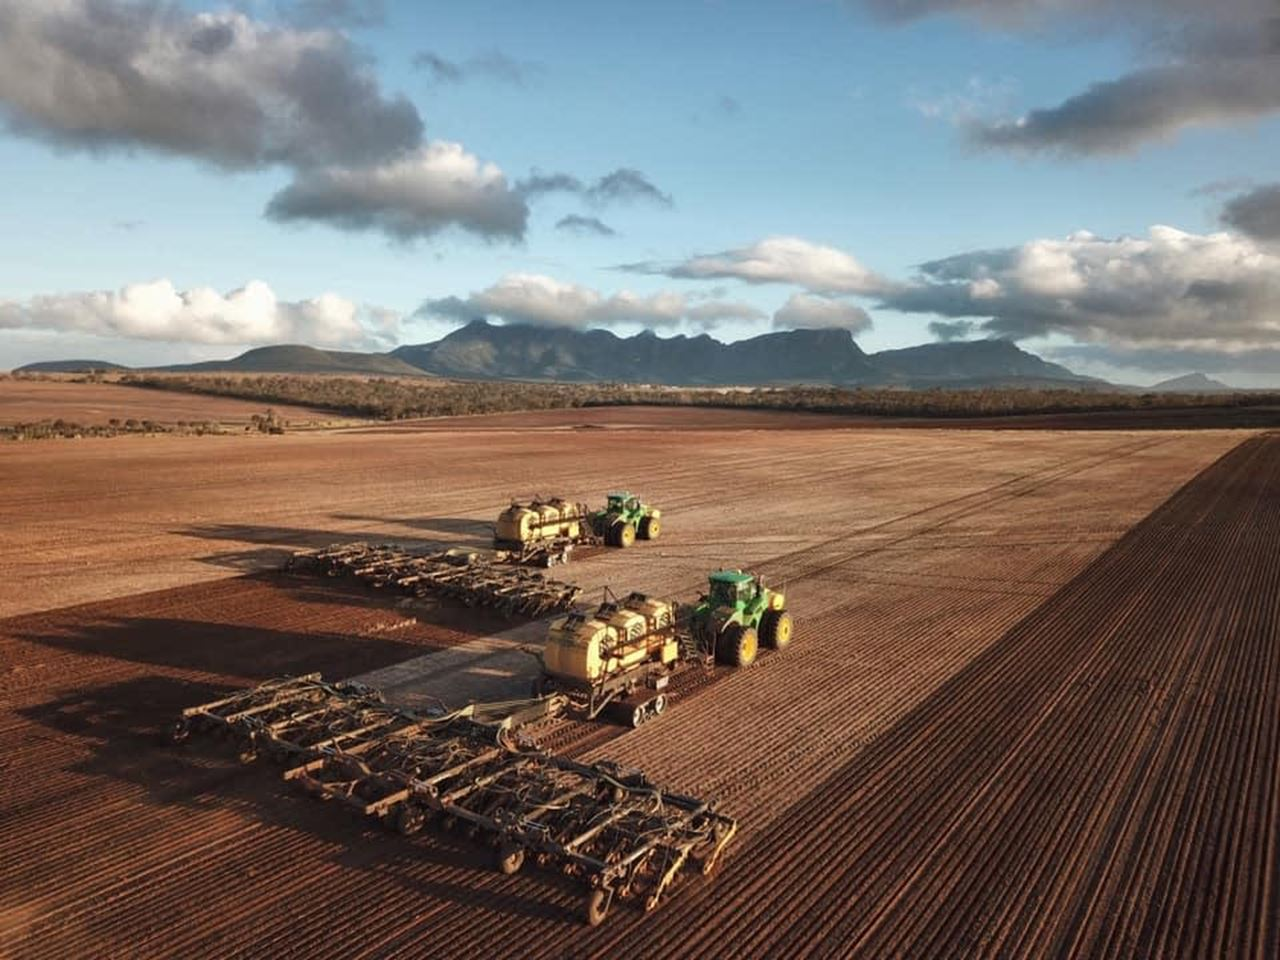 Two green tractors pulling two seeders work side by side in a reddish brown paddock